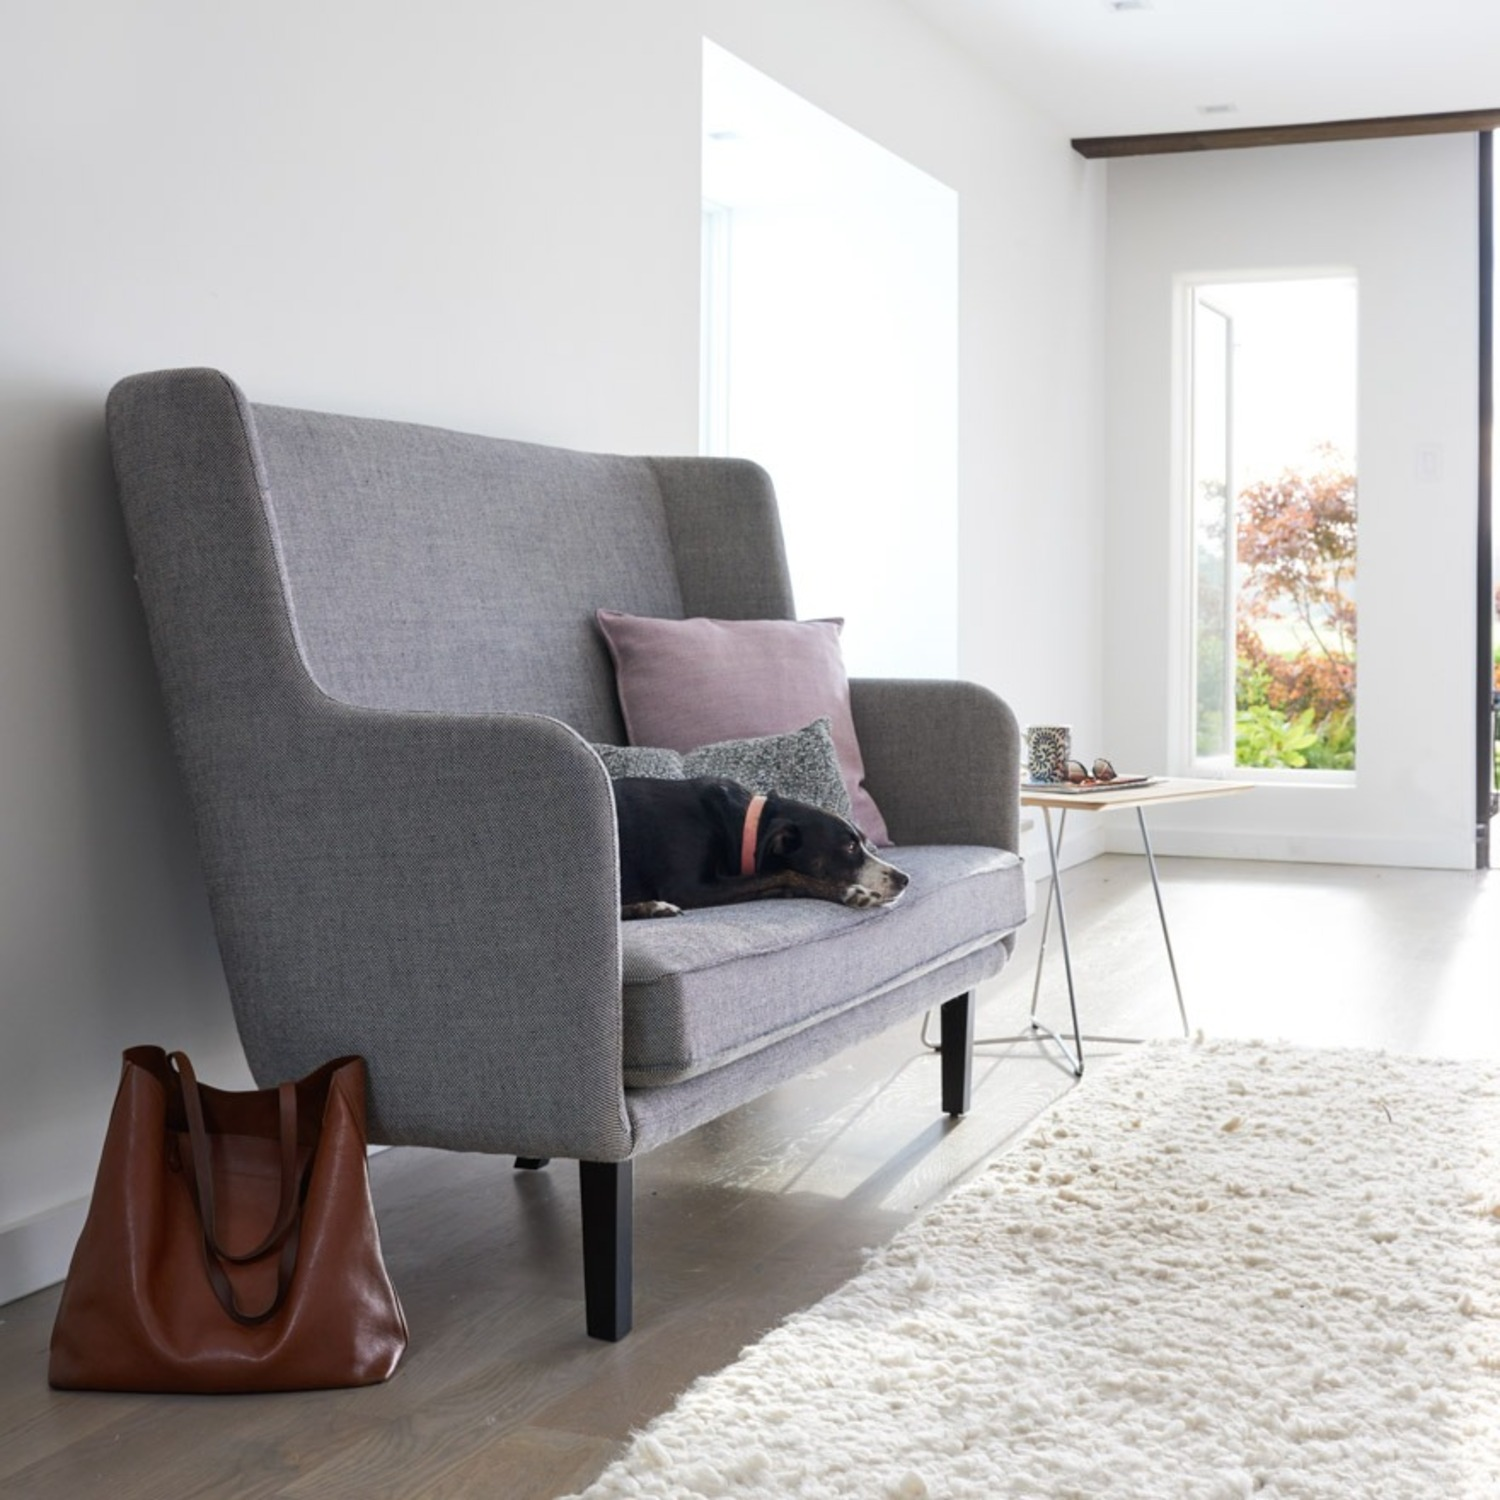 Knoll Rockwell Unscripted High Back Settee - image-8